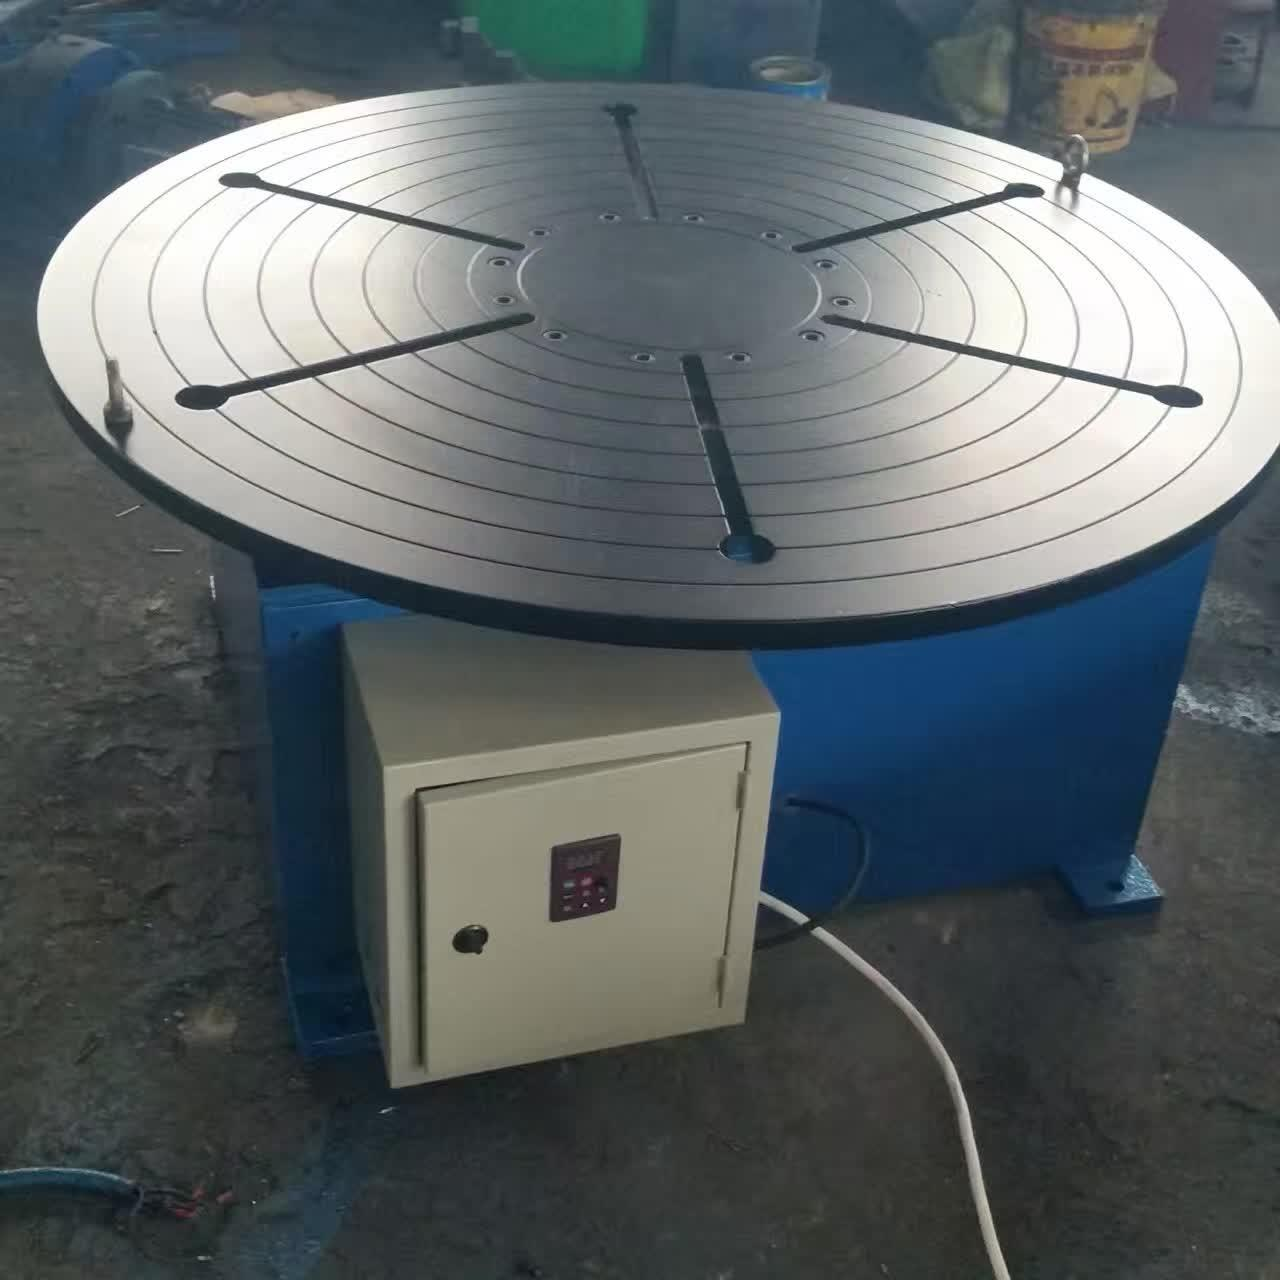 Buy Pipe Revolving Table For Welding For Round Seam Welding Rotary Table With Round Table Supporting 15 Tons at wholesale prices